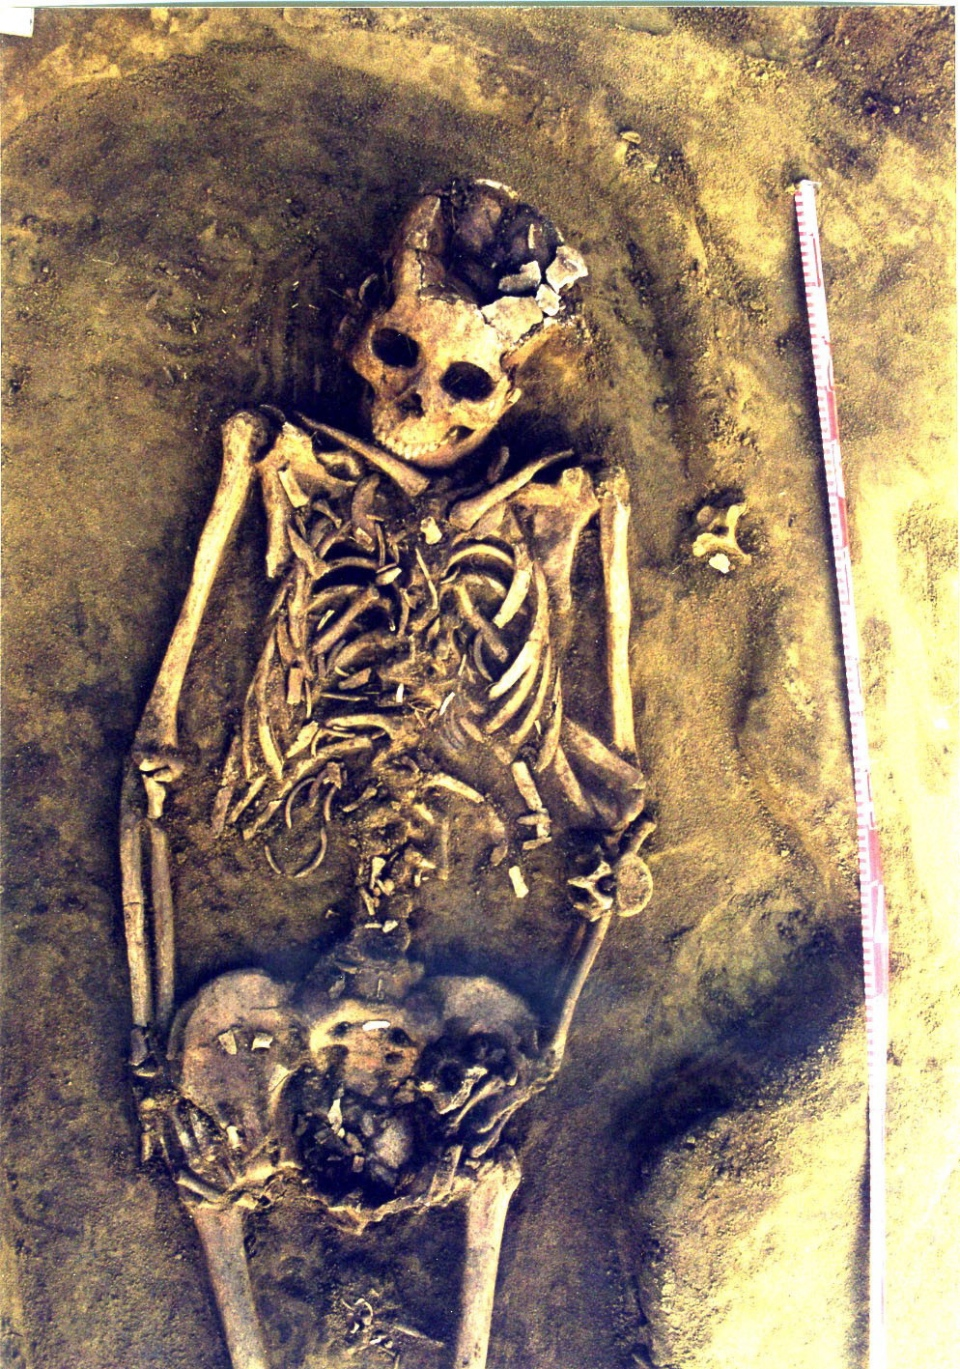 Canadian Finds 7 700 Year Old Skeletons Of Twins In